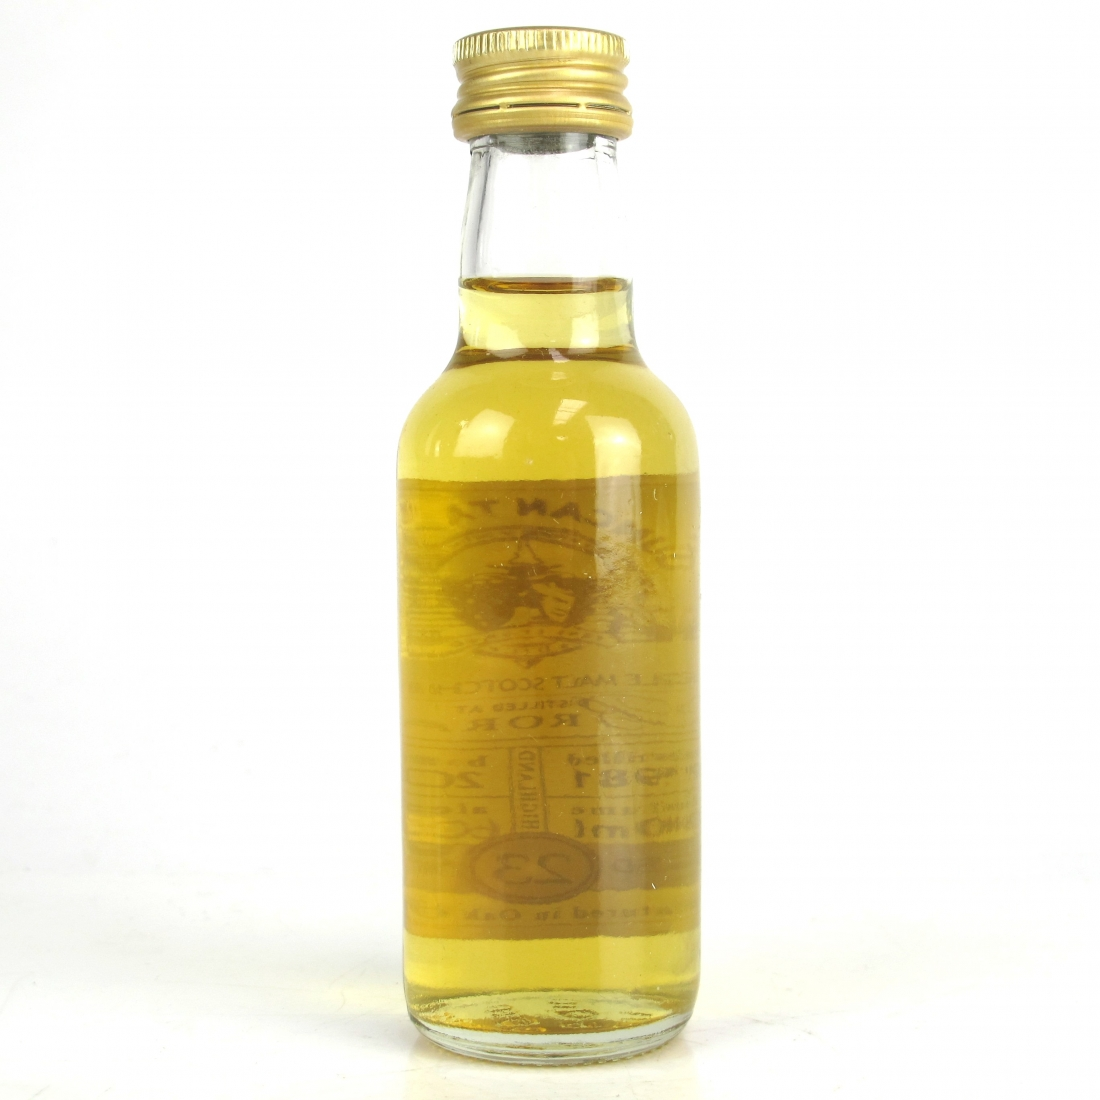 Brora 1981 Duncan Taylor 23 Year Old 5cl Miniature